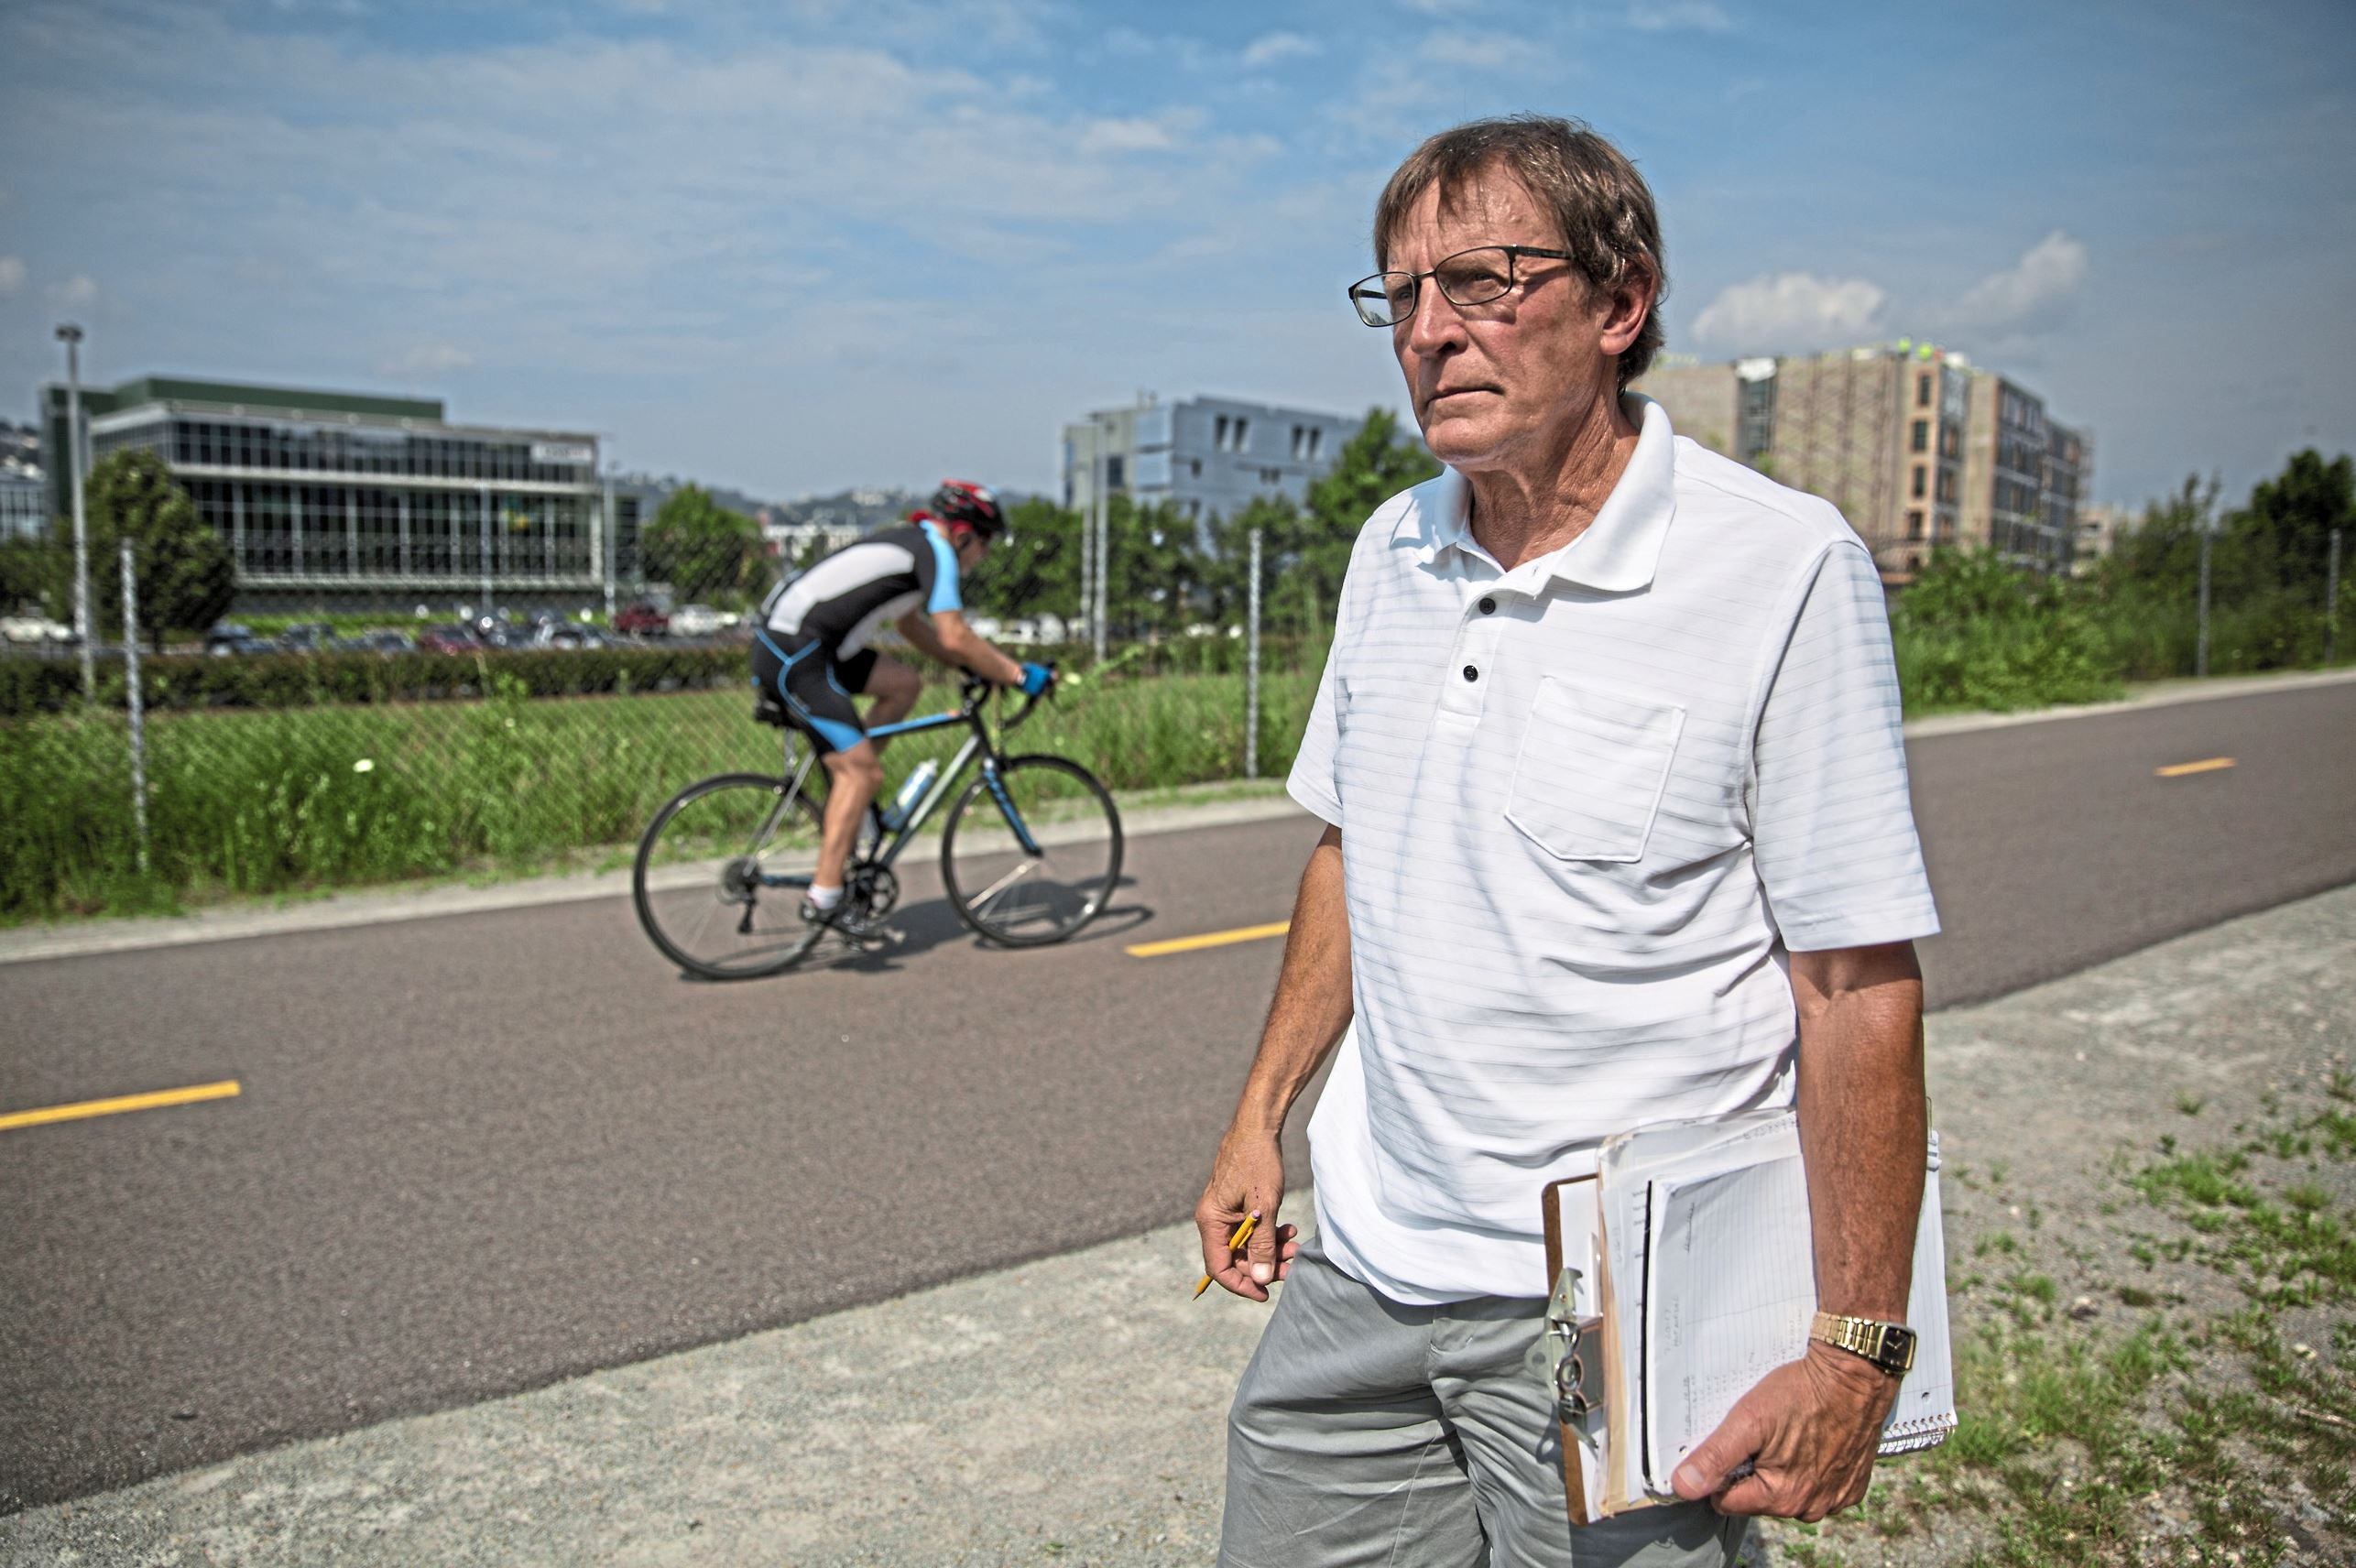 20170720adVolunteerCounter-01 Jerry Misiewicz of Bethel Park counts bikers and pedestrians as they pass by him along the Three Rivers Heritage Trail near the Hot Metal Bridge in South Oakland. It's just one of a number of volunteer efforts he's undertaken, from helping with tax returns to youth sports coach.